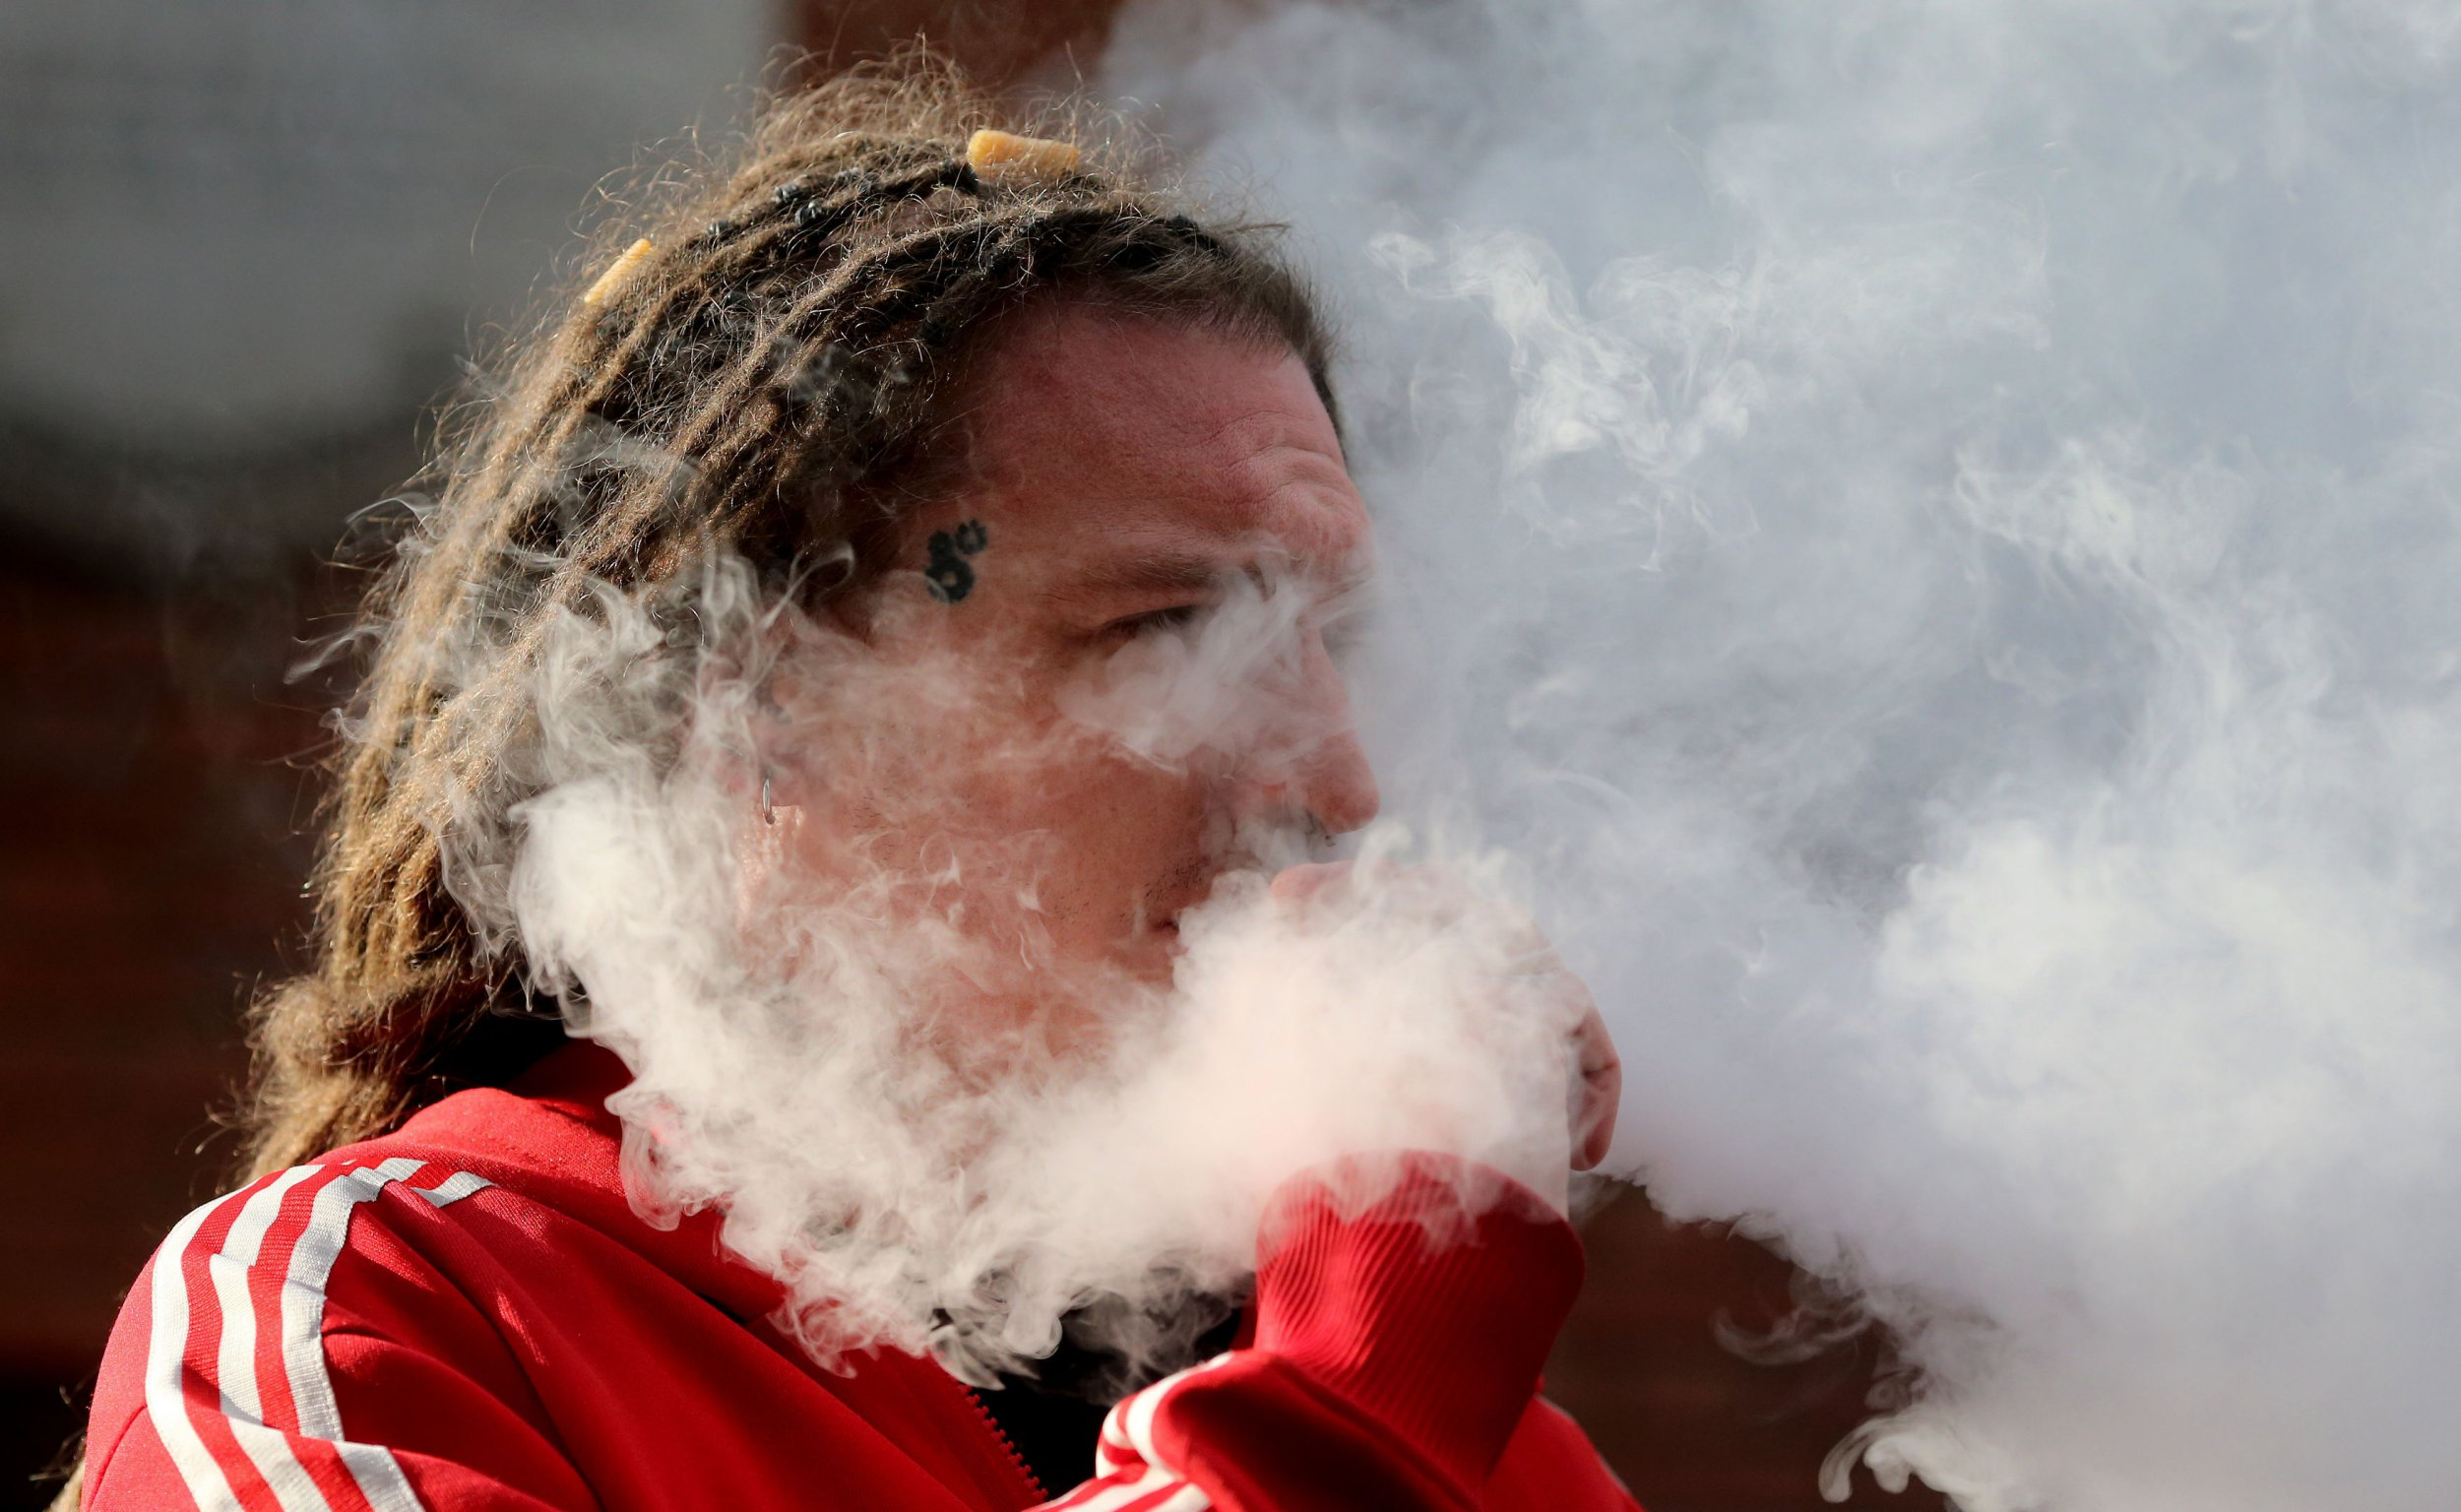 Dangers of 'vaping are being ignored' as evidence of harm mounts